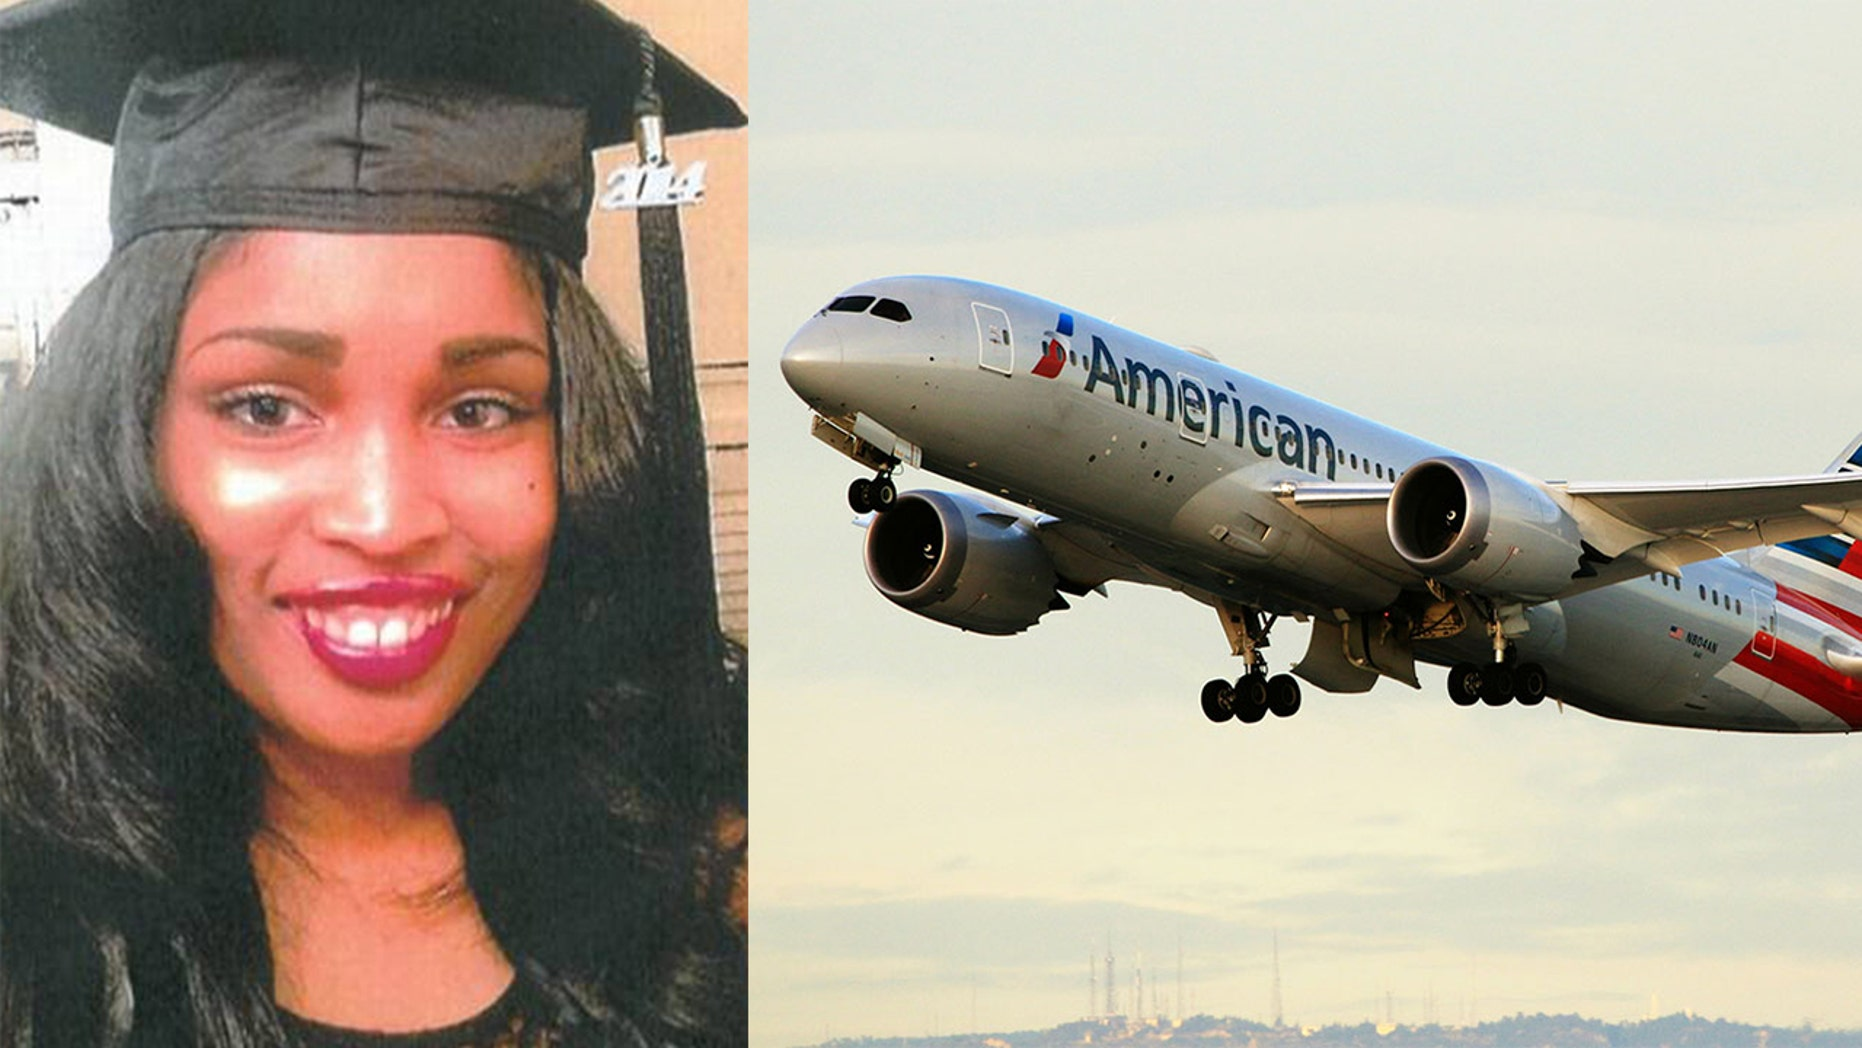 The family members of a 25-year-old woman who died after suffering a pulmonary embolism on an American Airlines flight say they never heard from the airline after the tragedy.